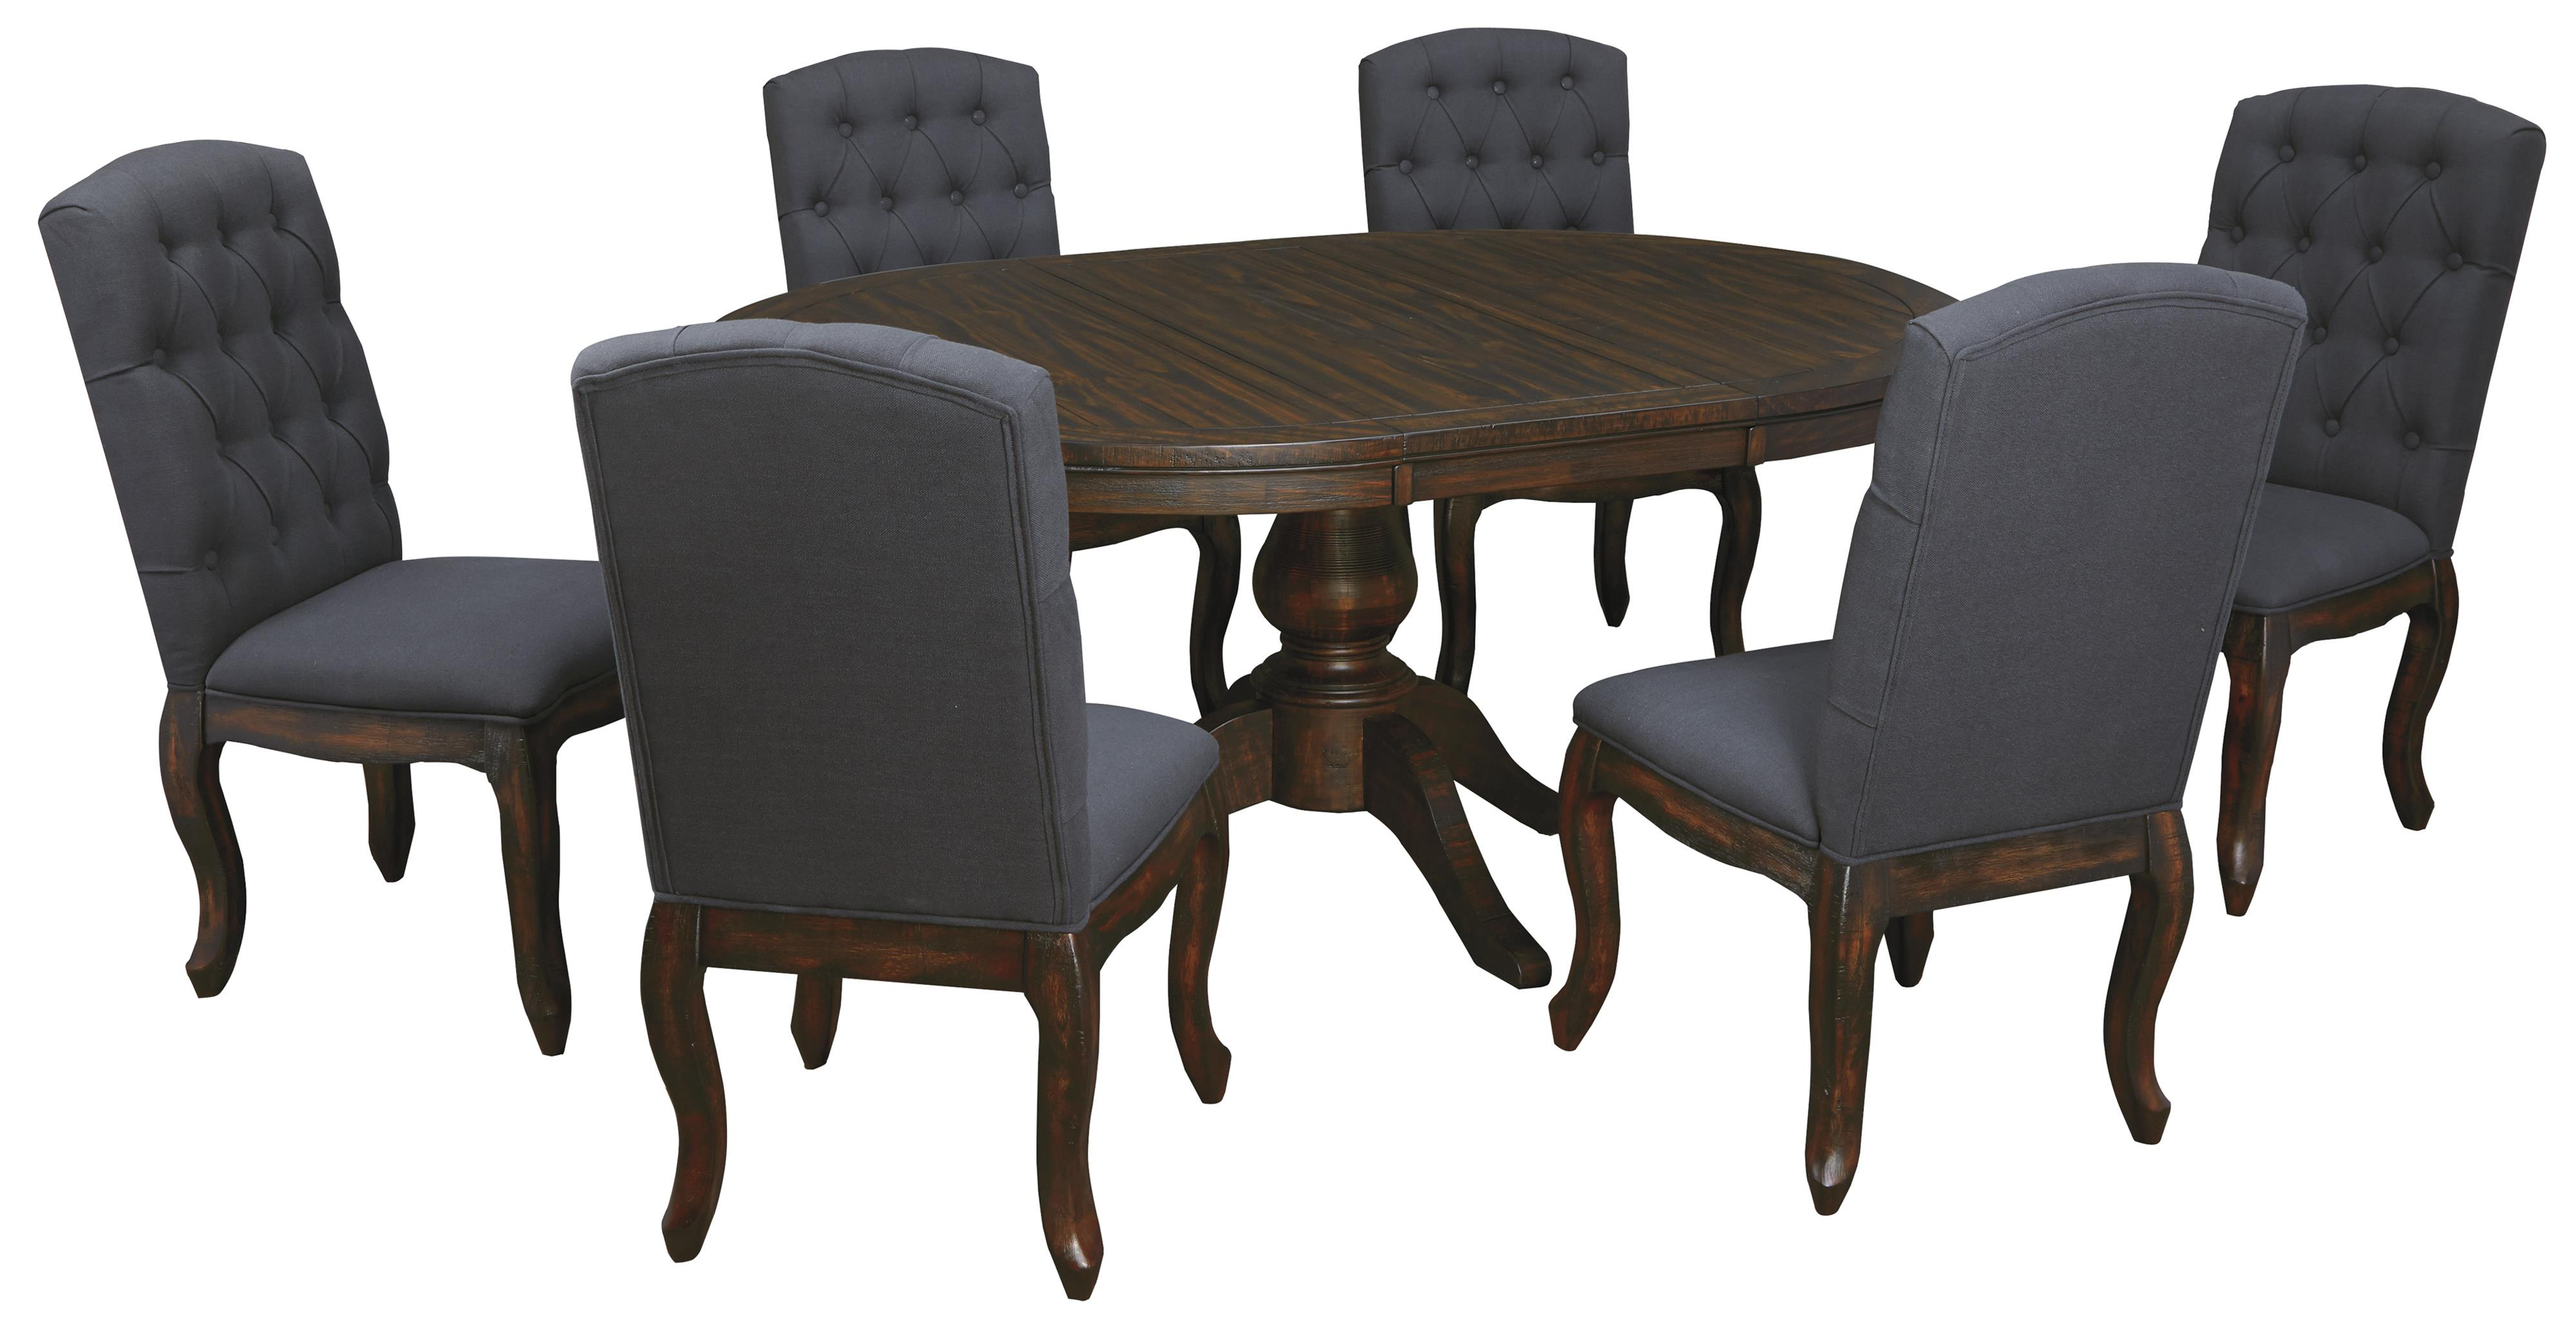 7 piece oval dining table set with upholstered side chairs for Decor 7 piece lunch set